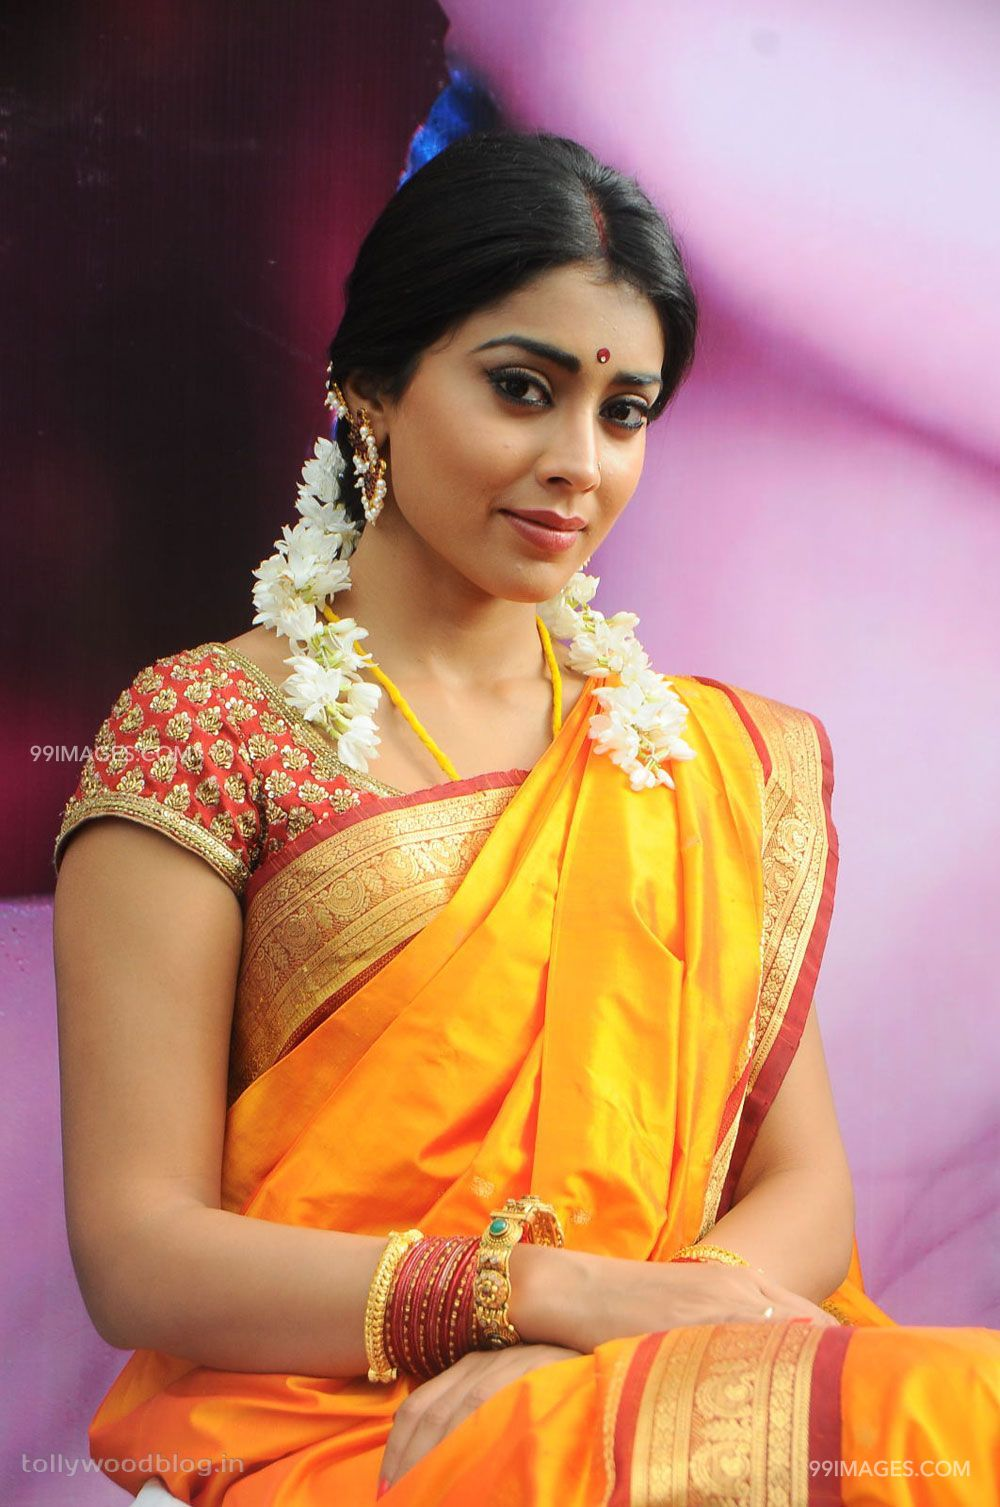 Shriya Saran Beautiful HD Photoshoot Stills (1080p) (3339) - Shriya Saran